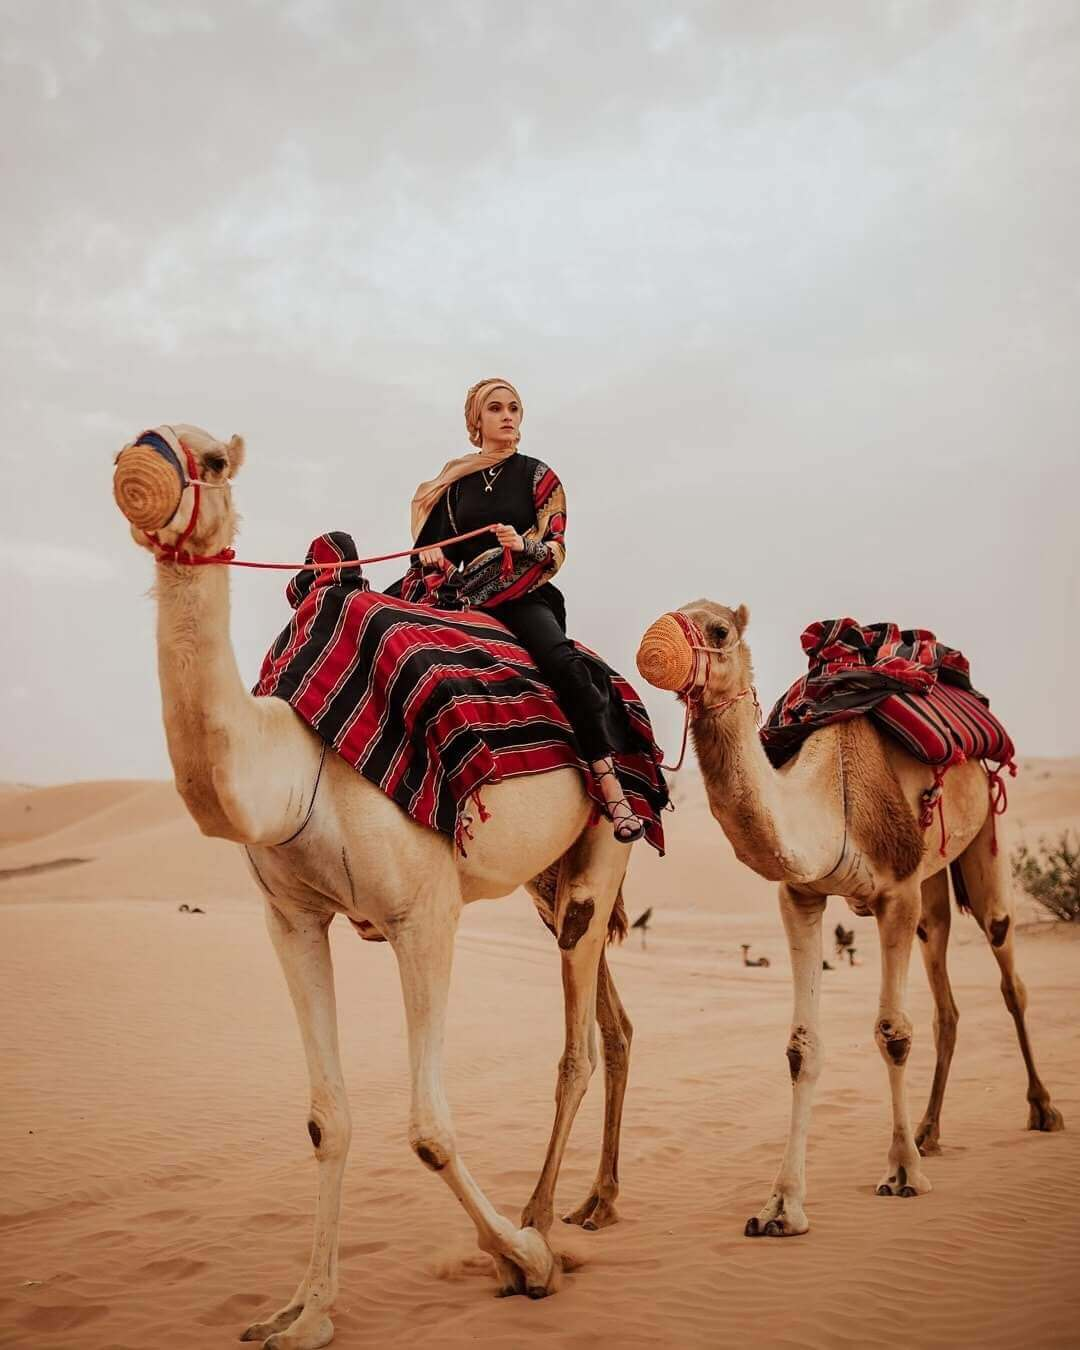 enjoy desert safari abu dhabi in 2020